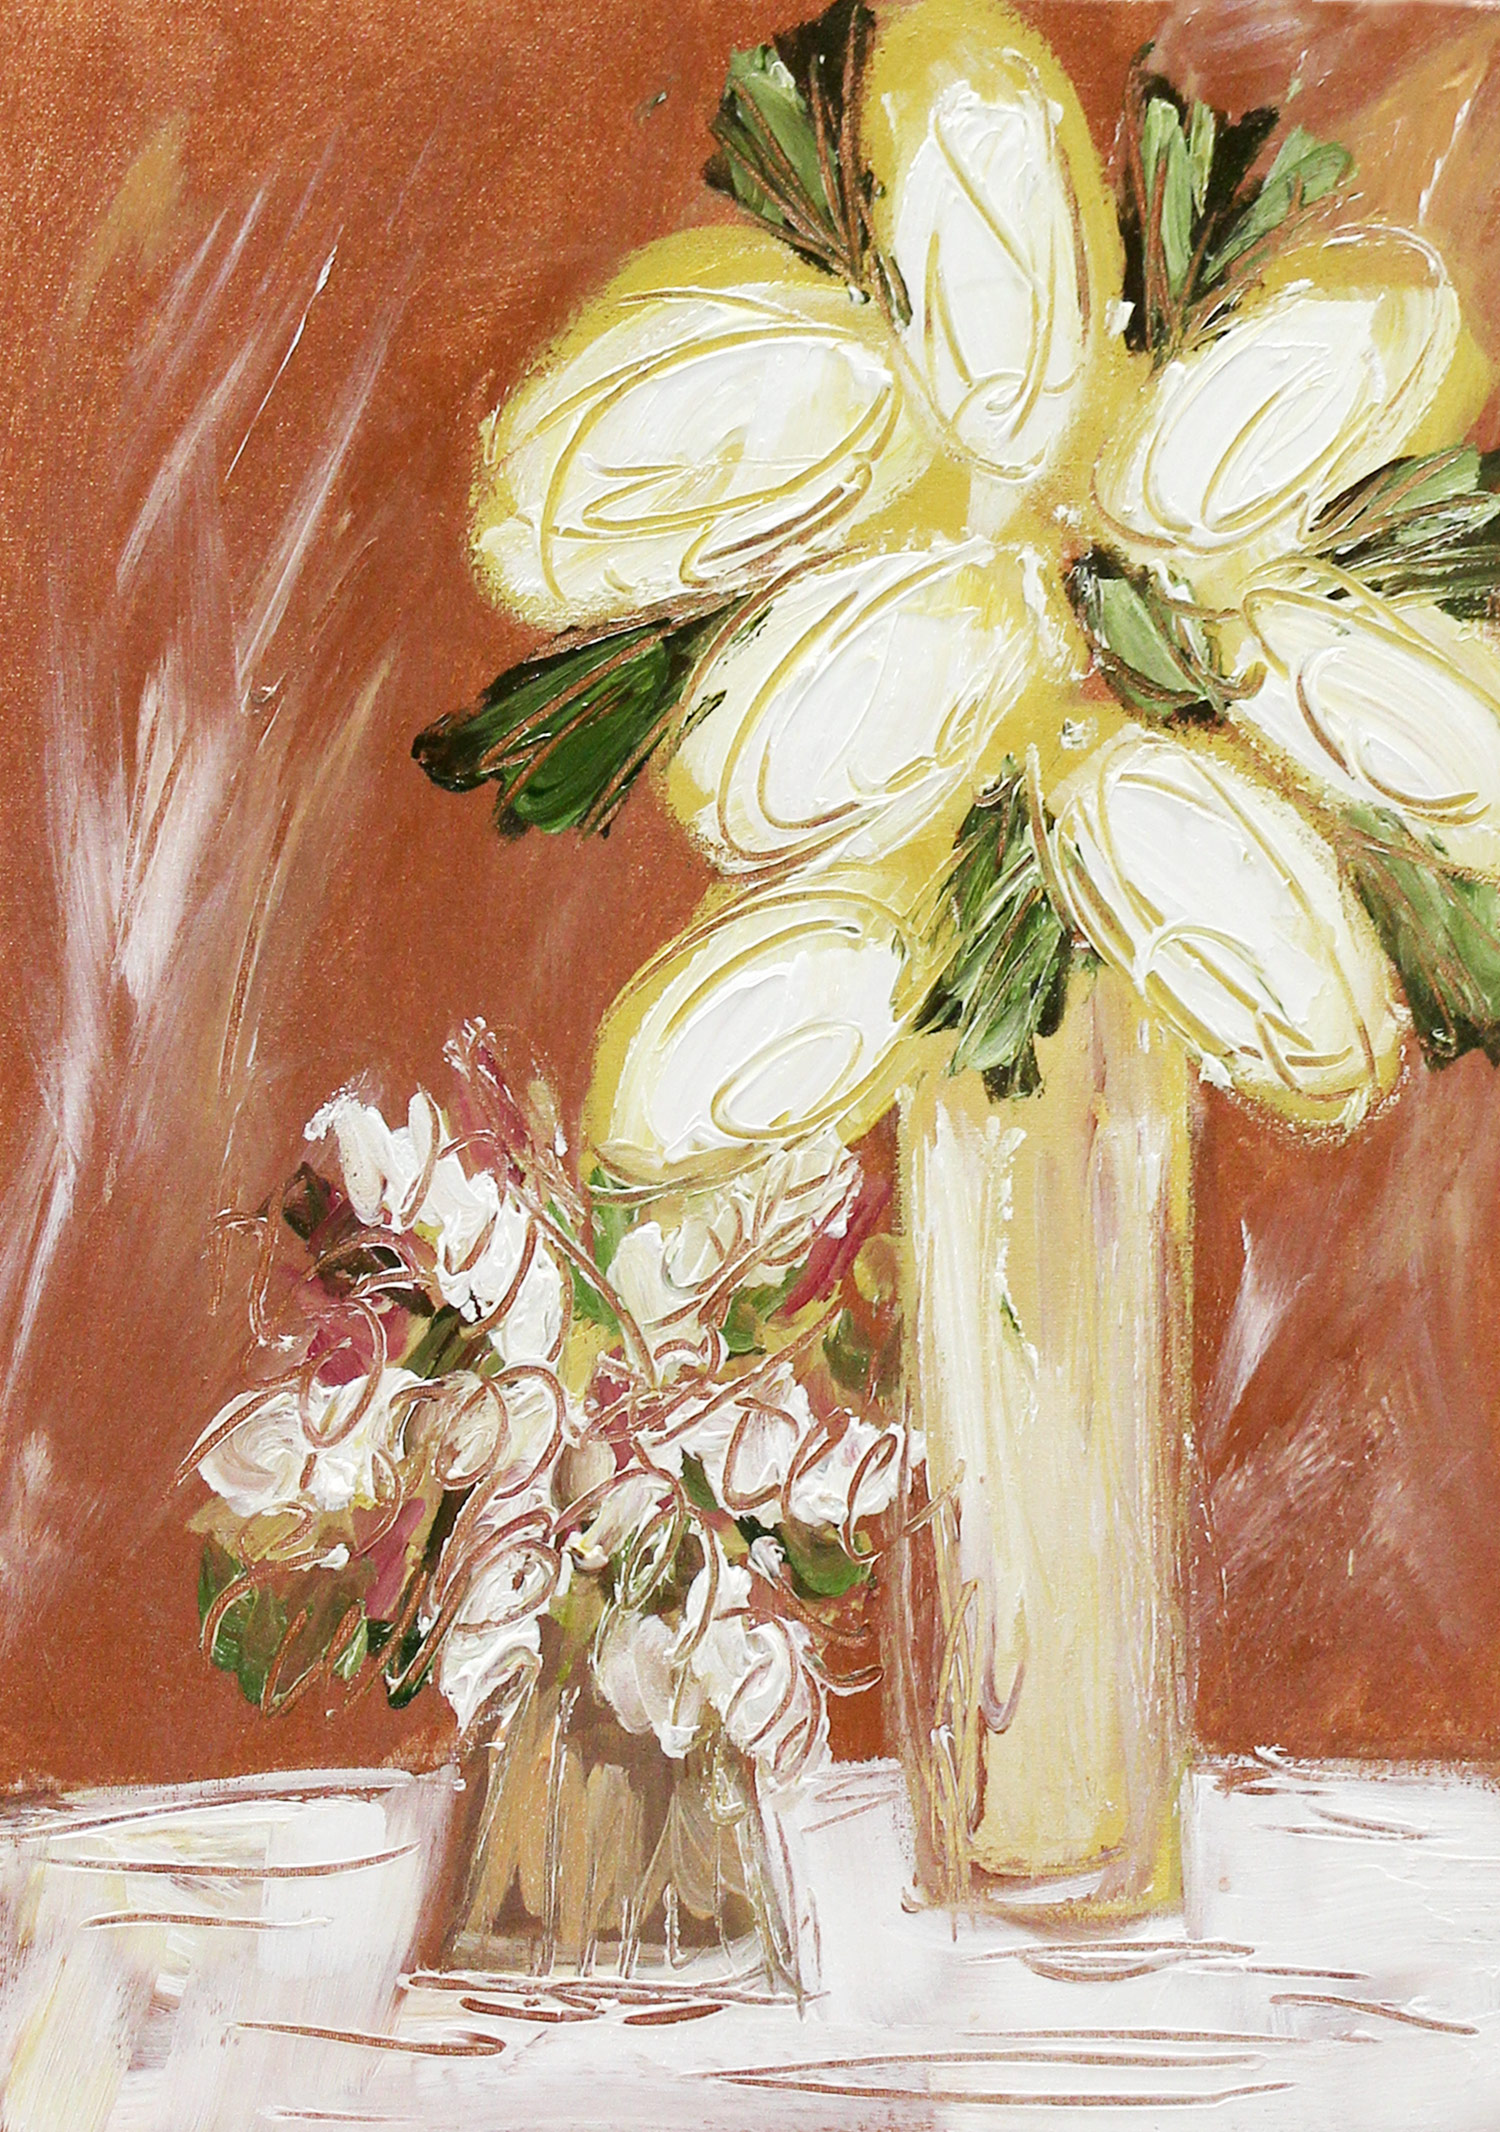 still-life-with-flowers-by-tracey-marshall-5.jpg